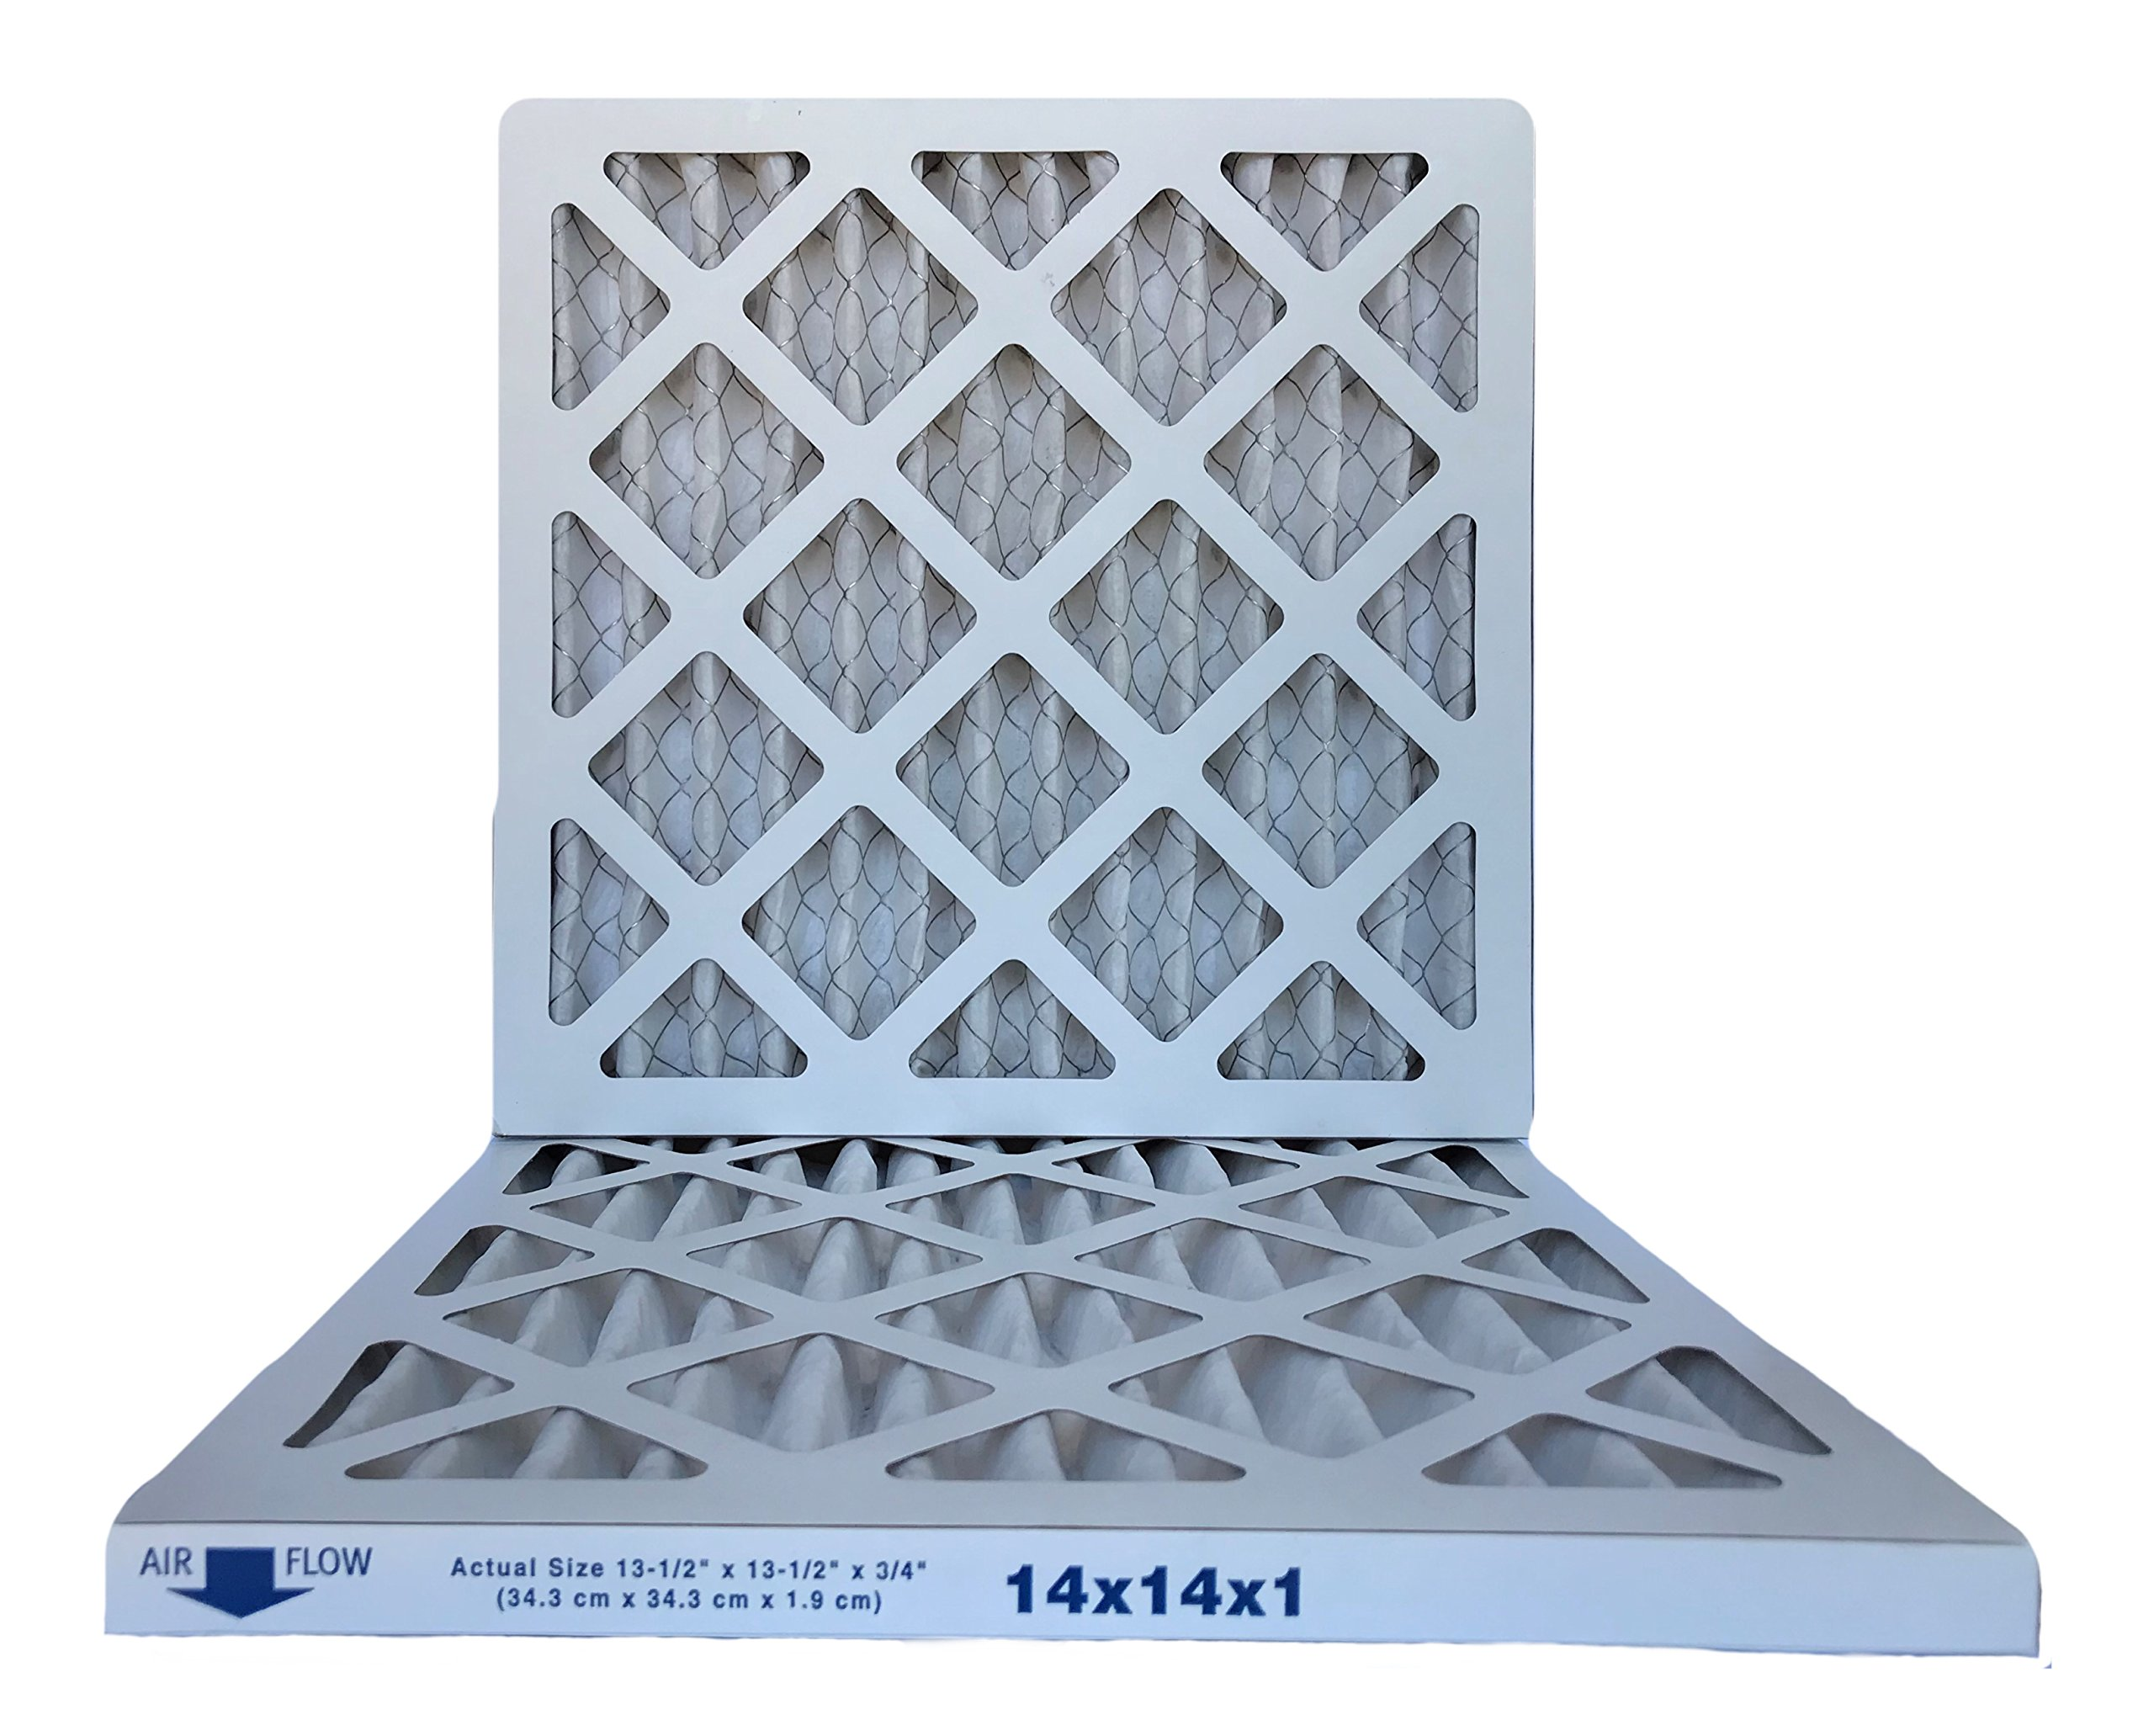 Filterene 14x14x1 Air Filter, MERV 8, MPR 600, Pleated AC Furnace Air Filter, (Pack of 2) Filters, USA Manufactured by Filterene (Image #1)